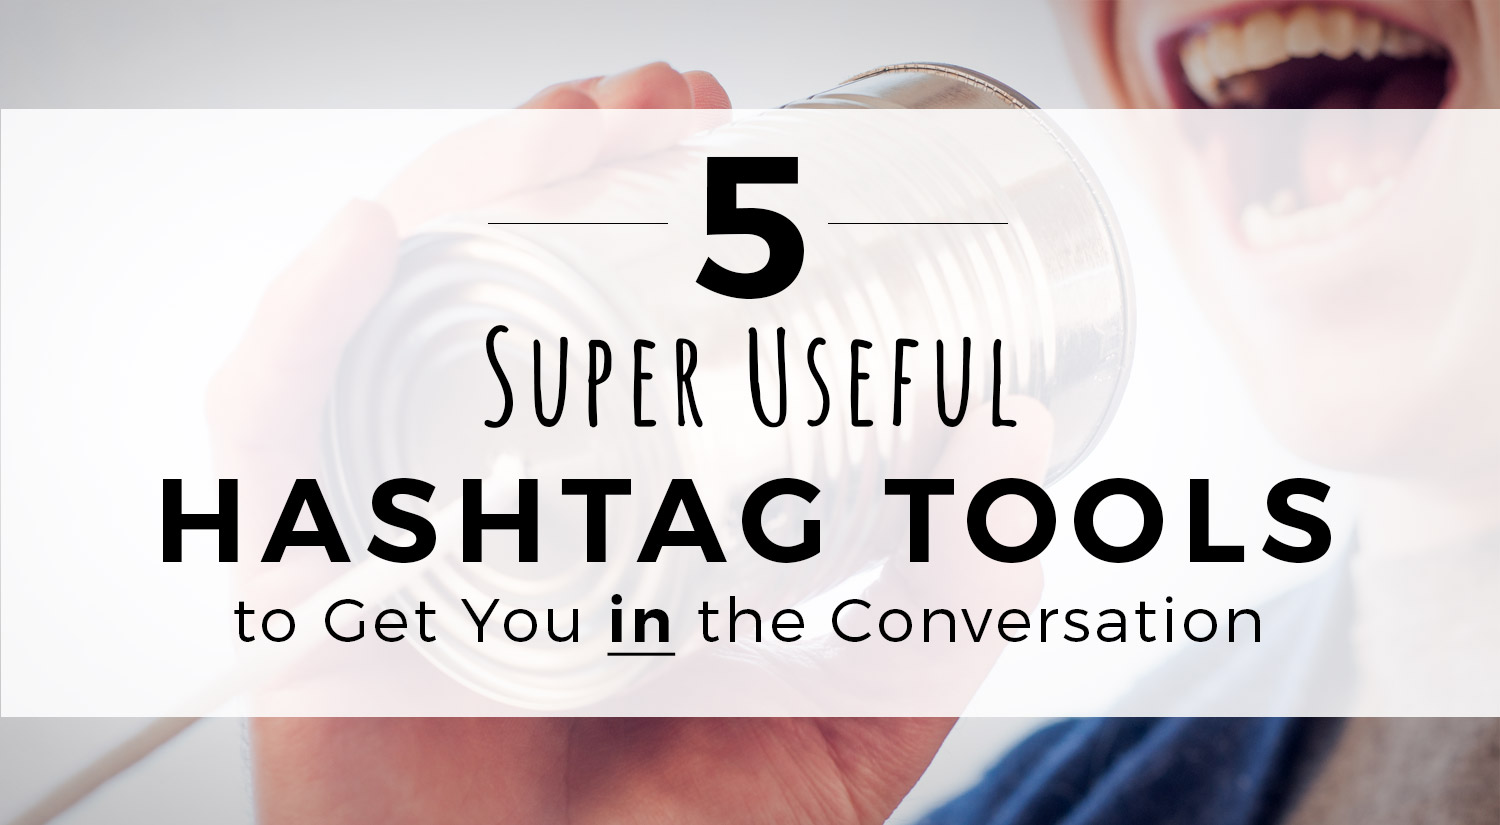 5 Social Media Hashtag Tools to Get You in the Conversation